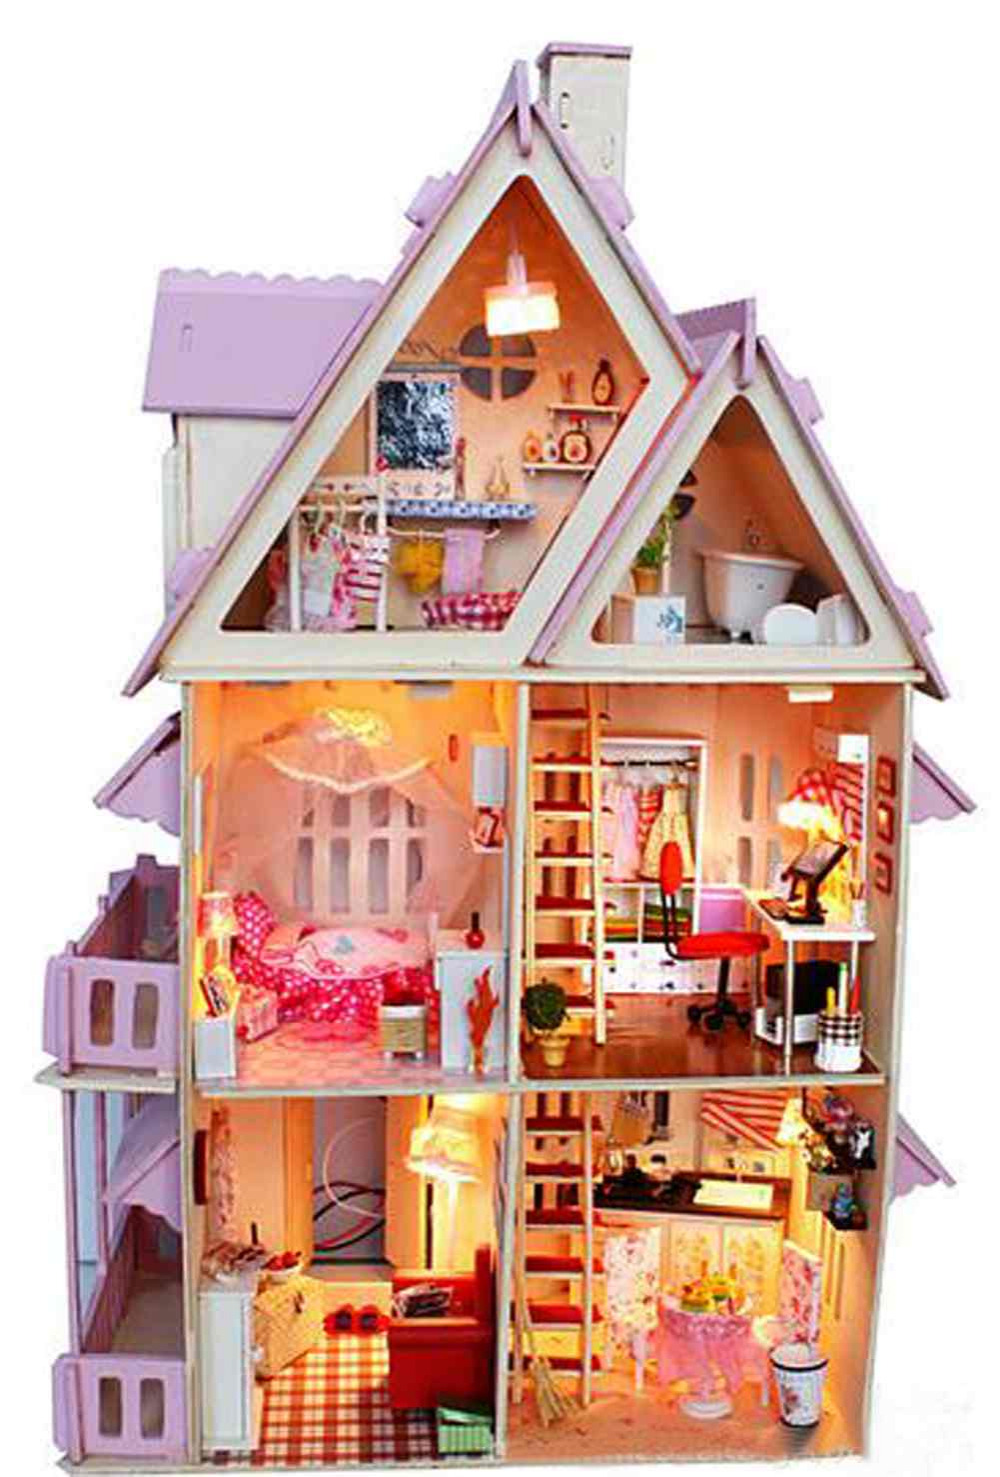 Miniature Wooden Dollhouse Furniture Model Toy Christmas Gift CASTLE ...